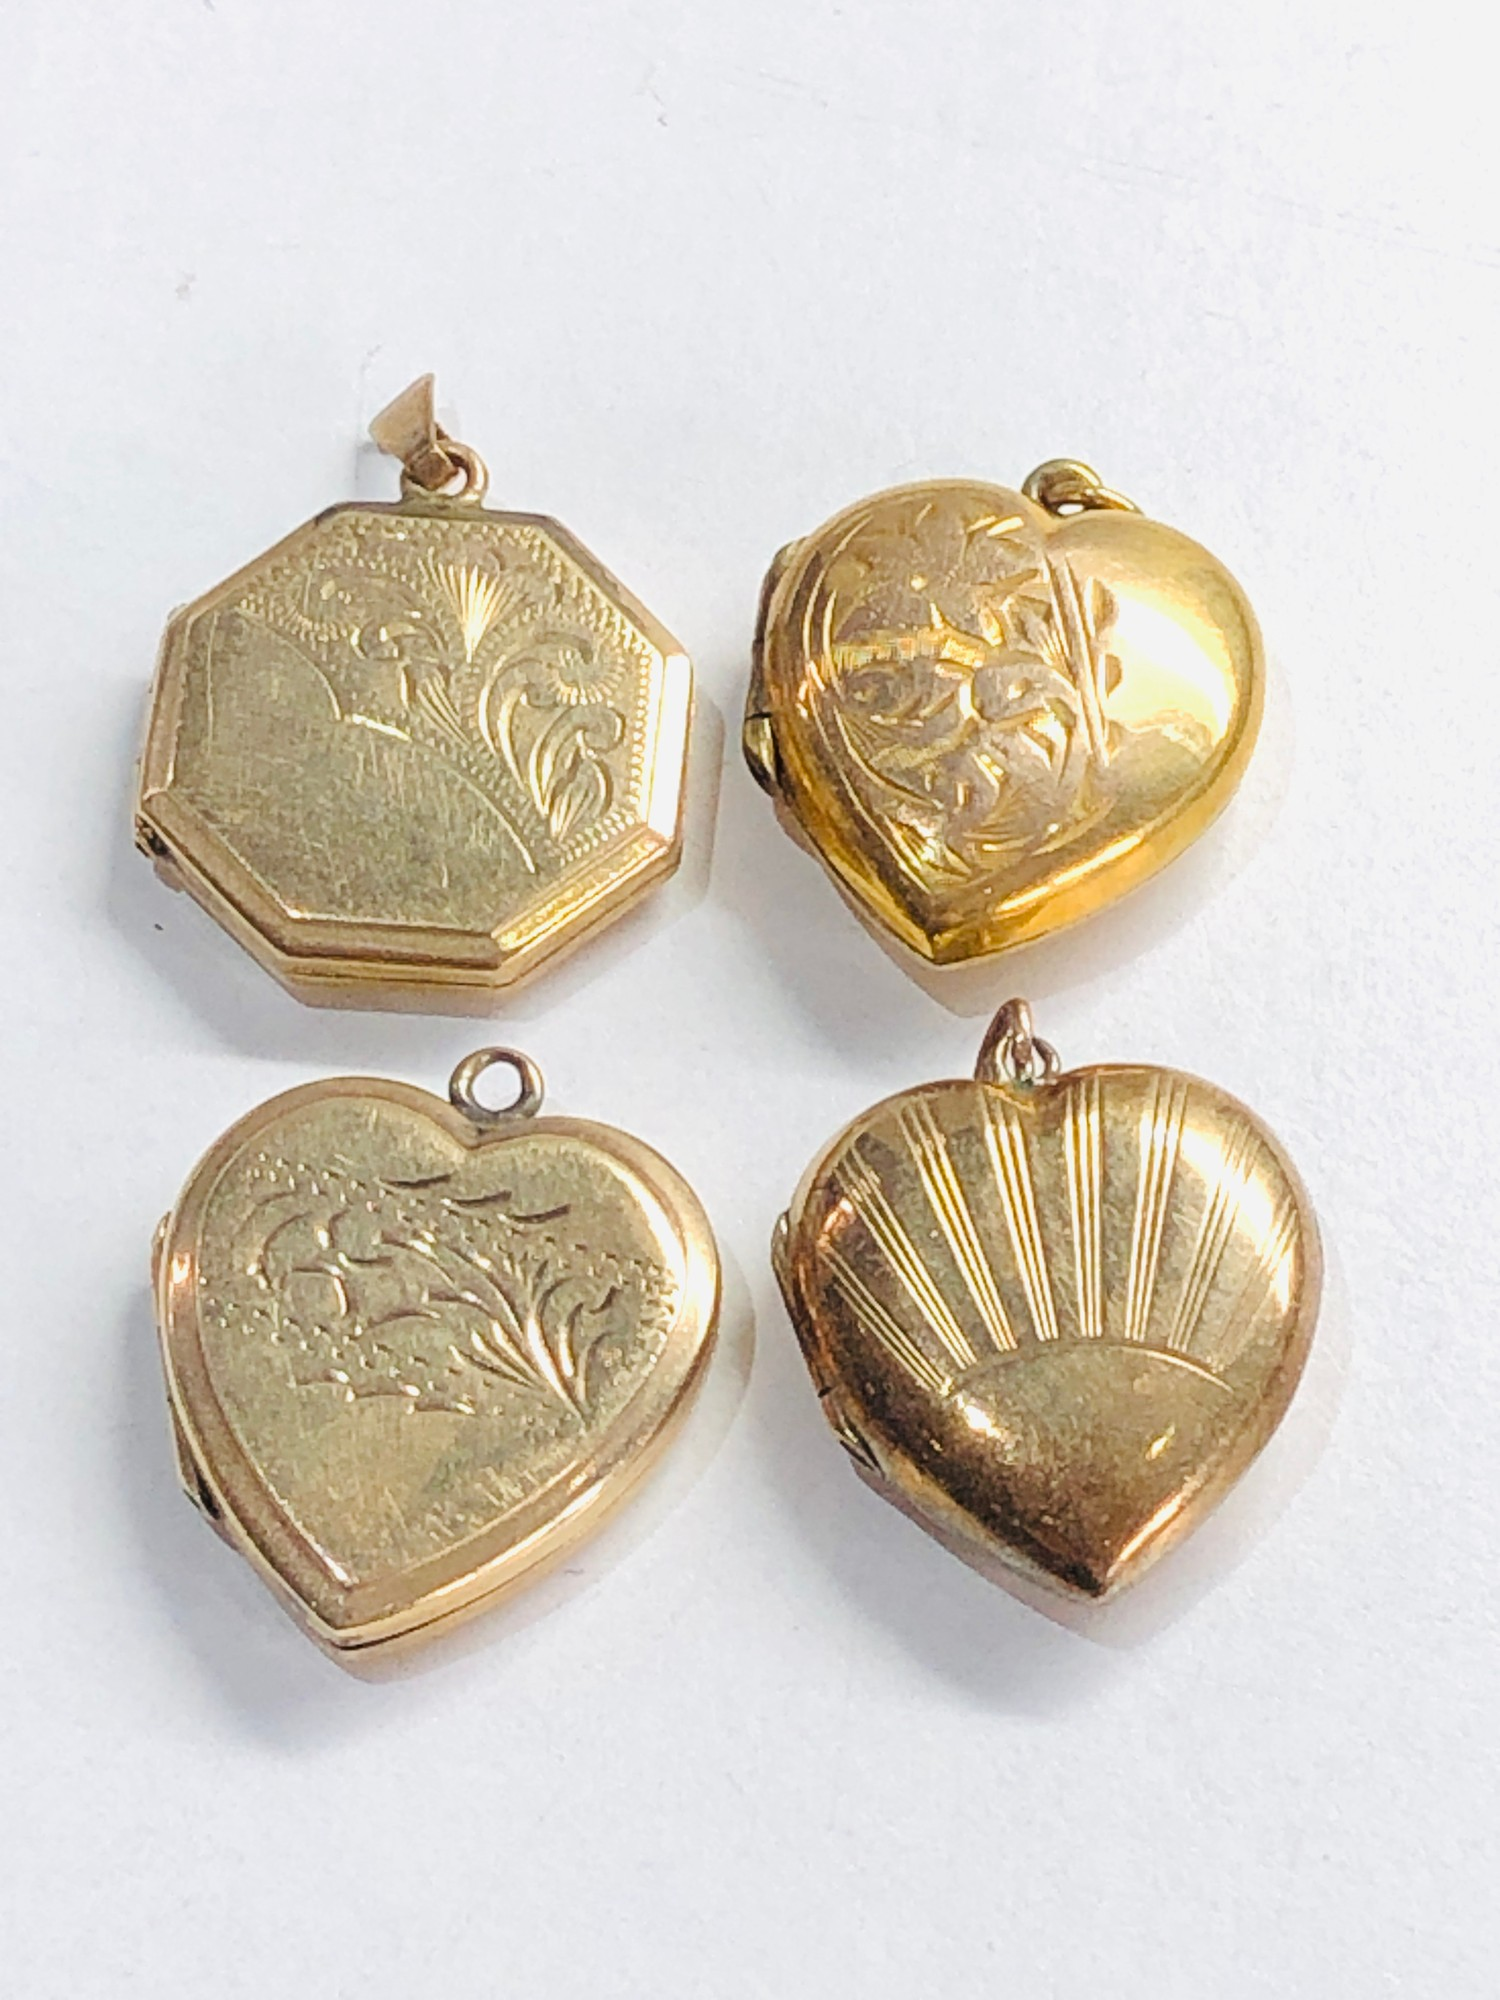 4 x 9ct back & front lockets 12.8g